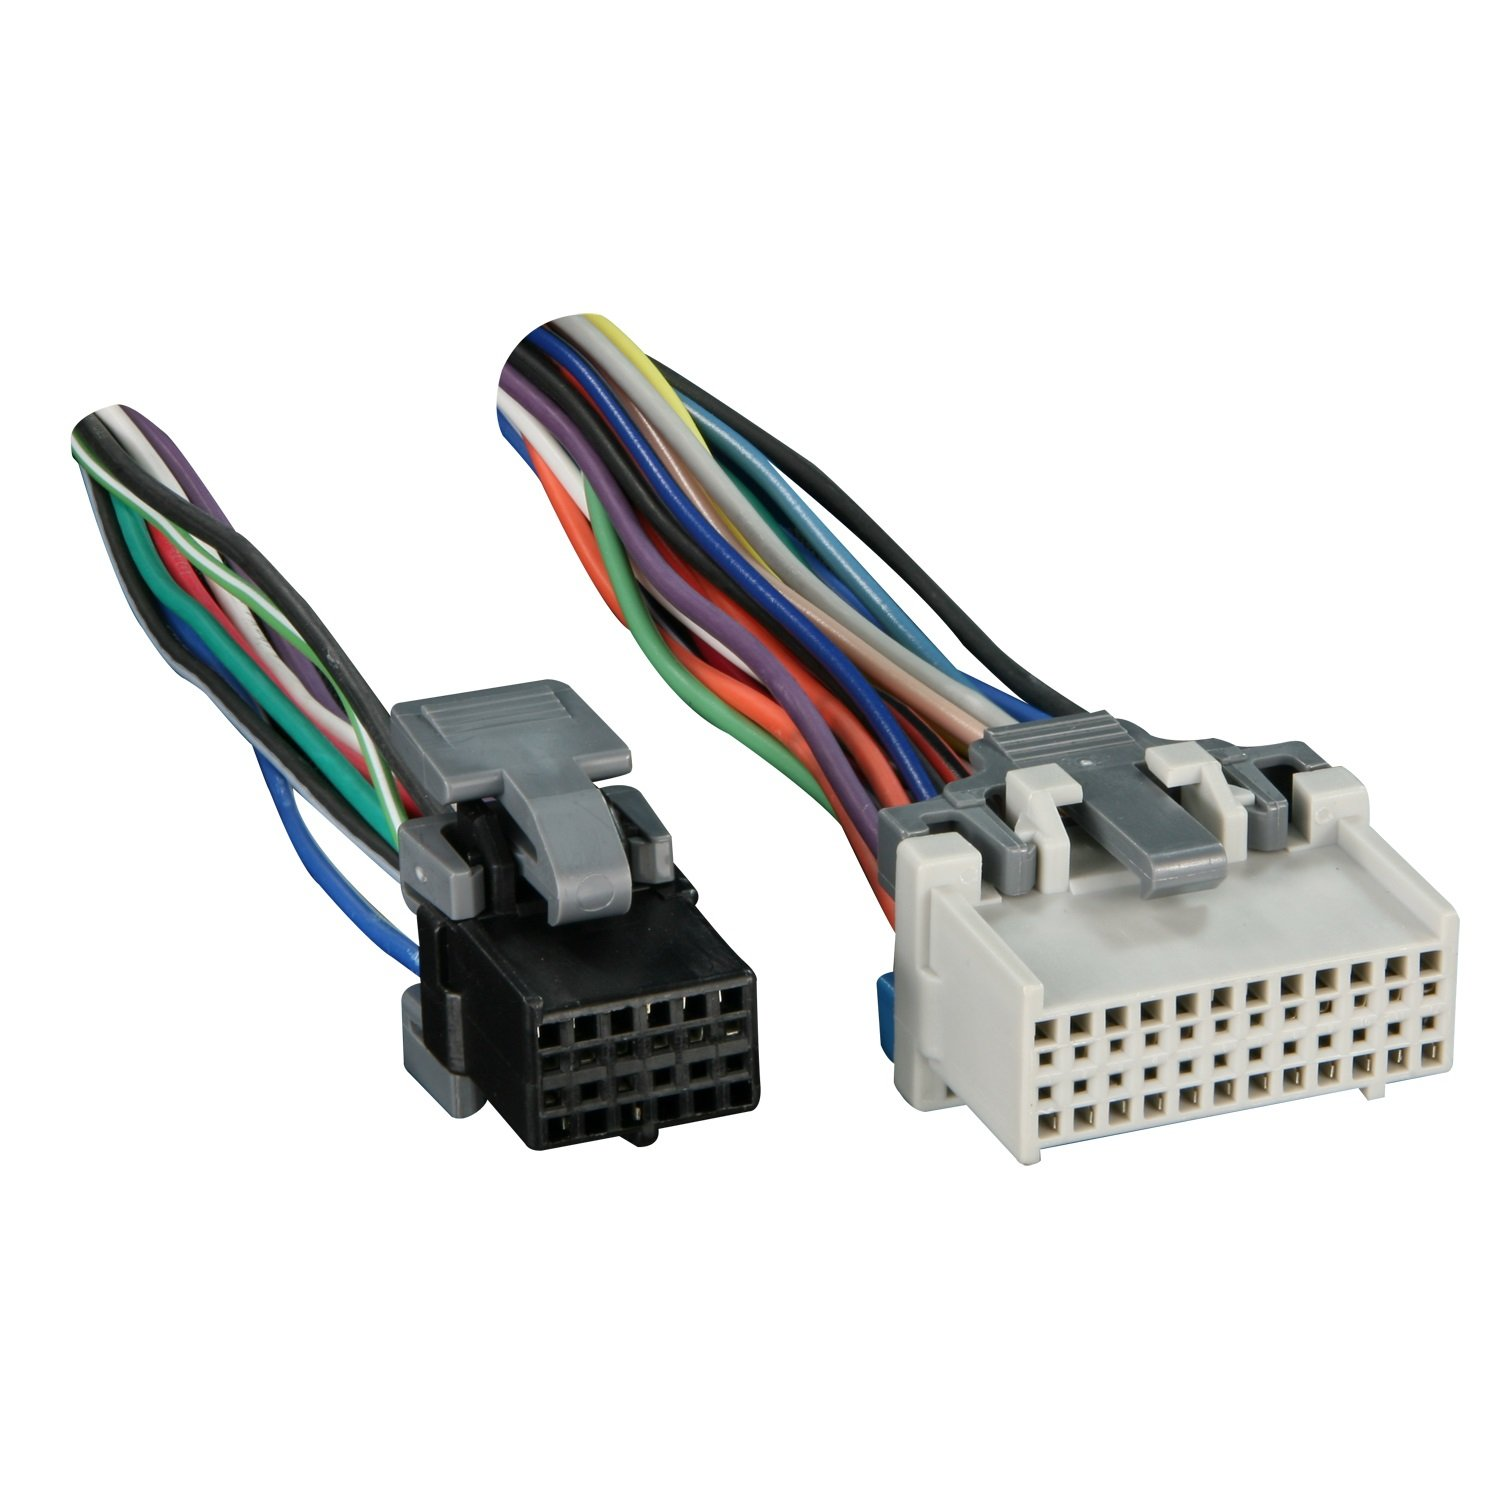 711log4bdML._SL1500_ amazon com metra turbowires 71 2003 1 wiring harness car electronics radio harness at aneh.co